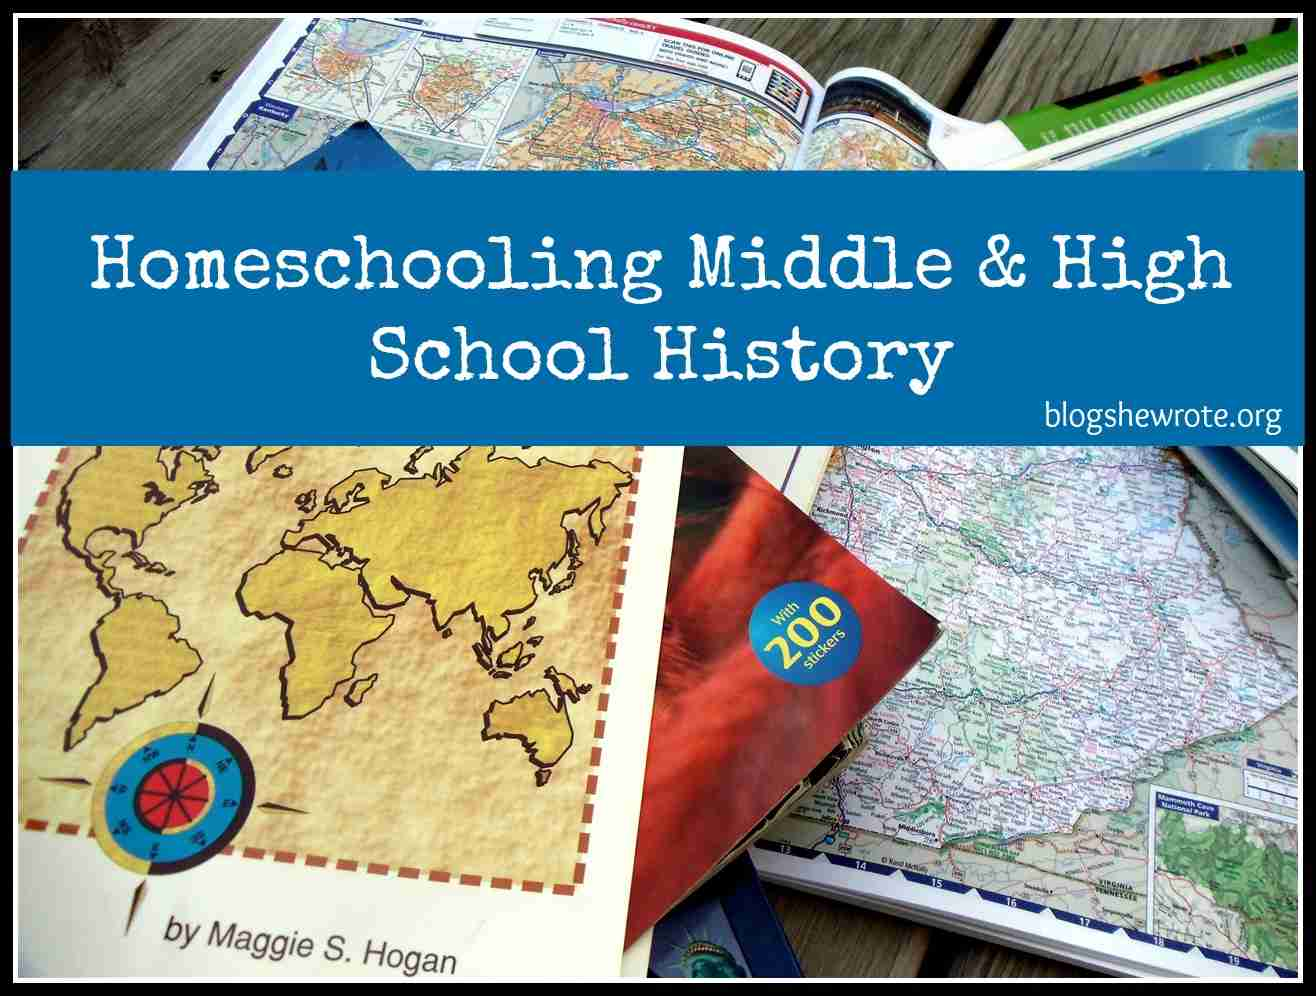 Blog, She Wrote: Homeschooling Middle & High School History